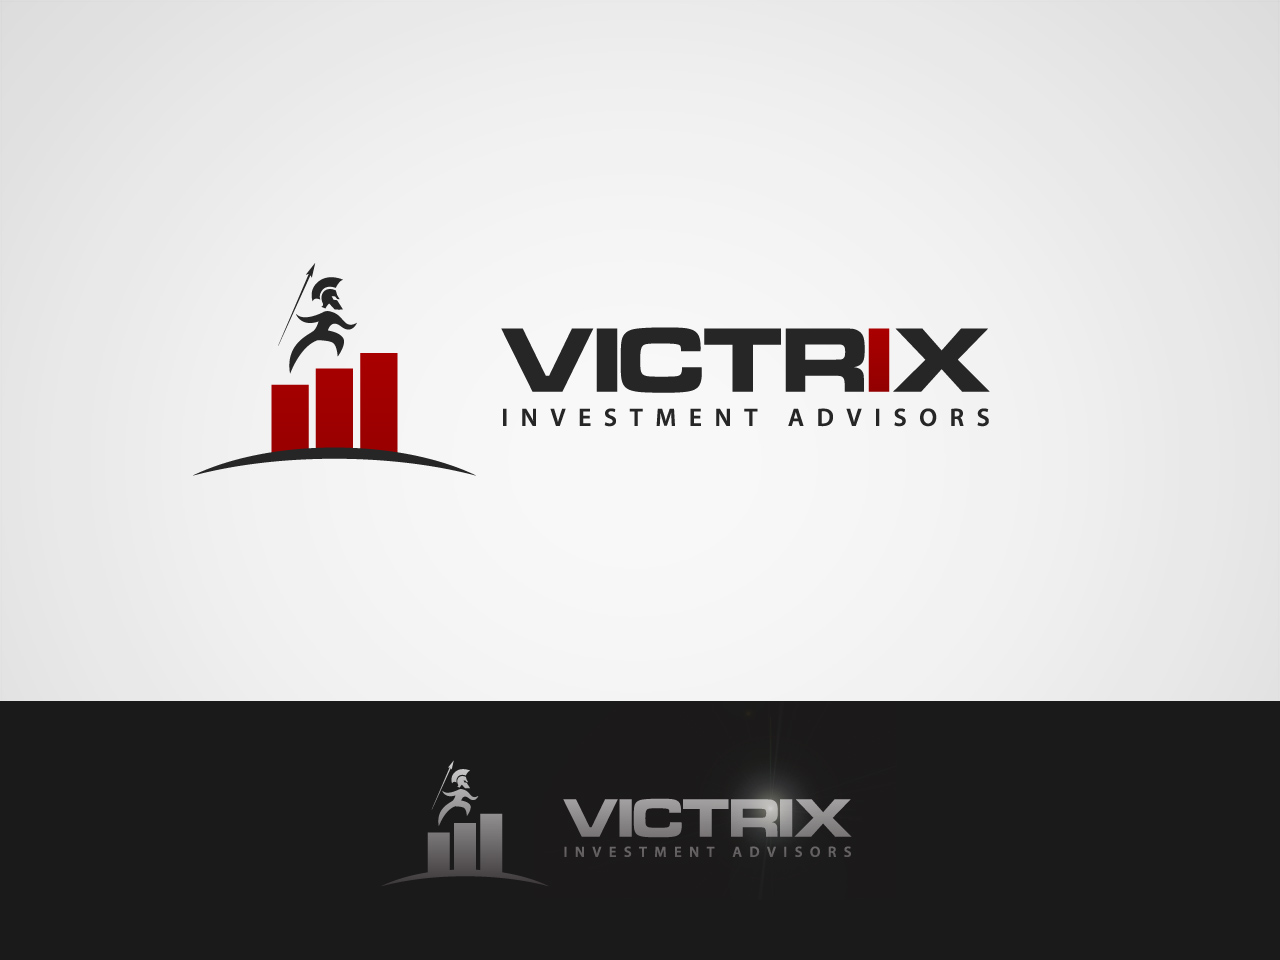 Logo Design by jpbituin - Entry No. 128 in the Logo Design Contest Inspiring Logo Design for Victrix Investment Advisors.